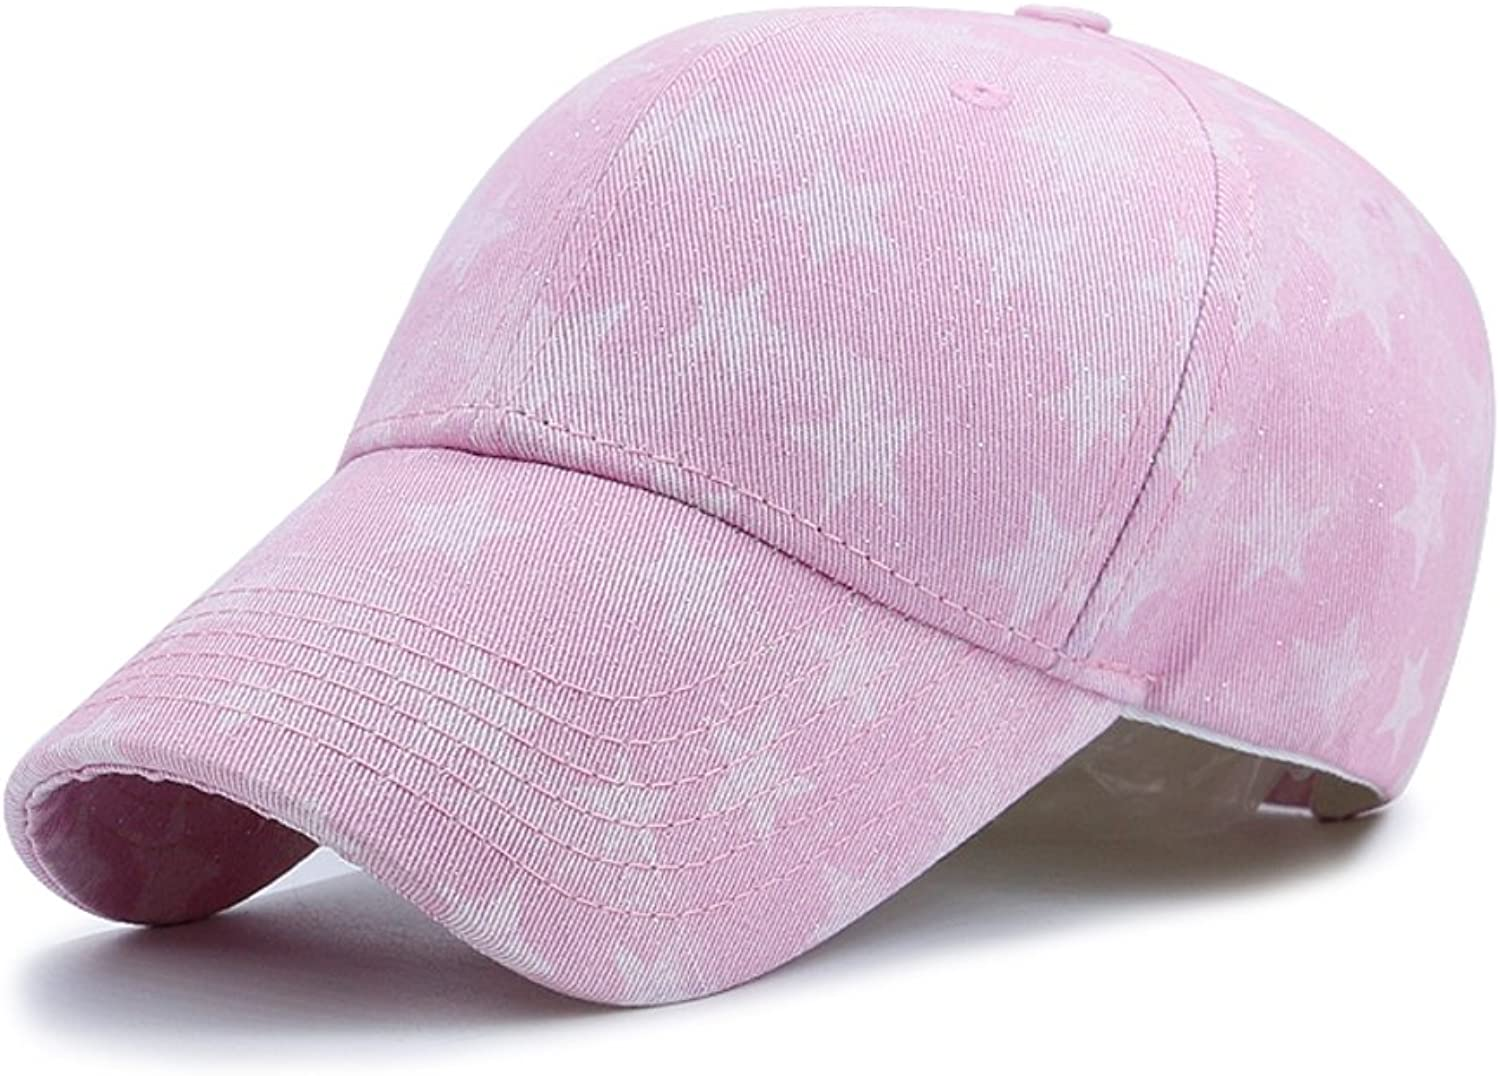 Baseball Cap Fashion,Star,Printing,Sunscreen Sun Hat Outdoor CapPink adjustable